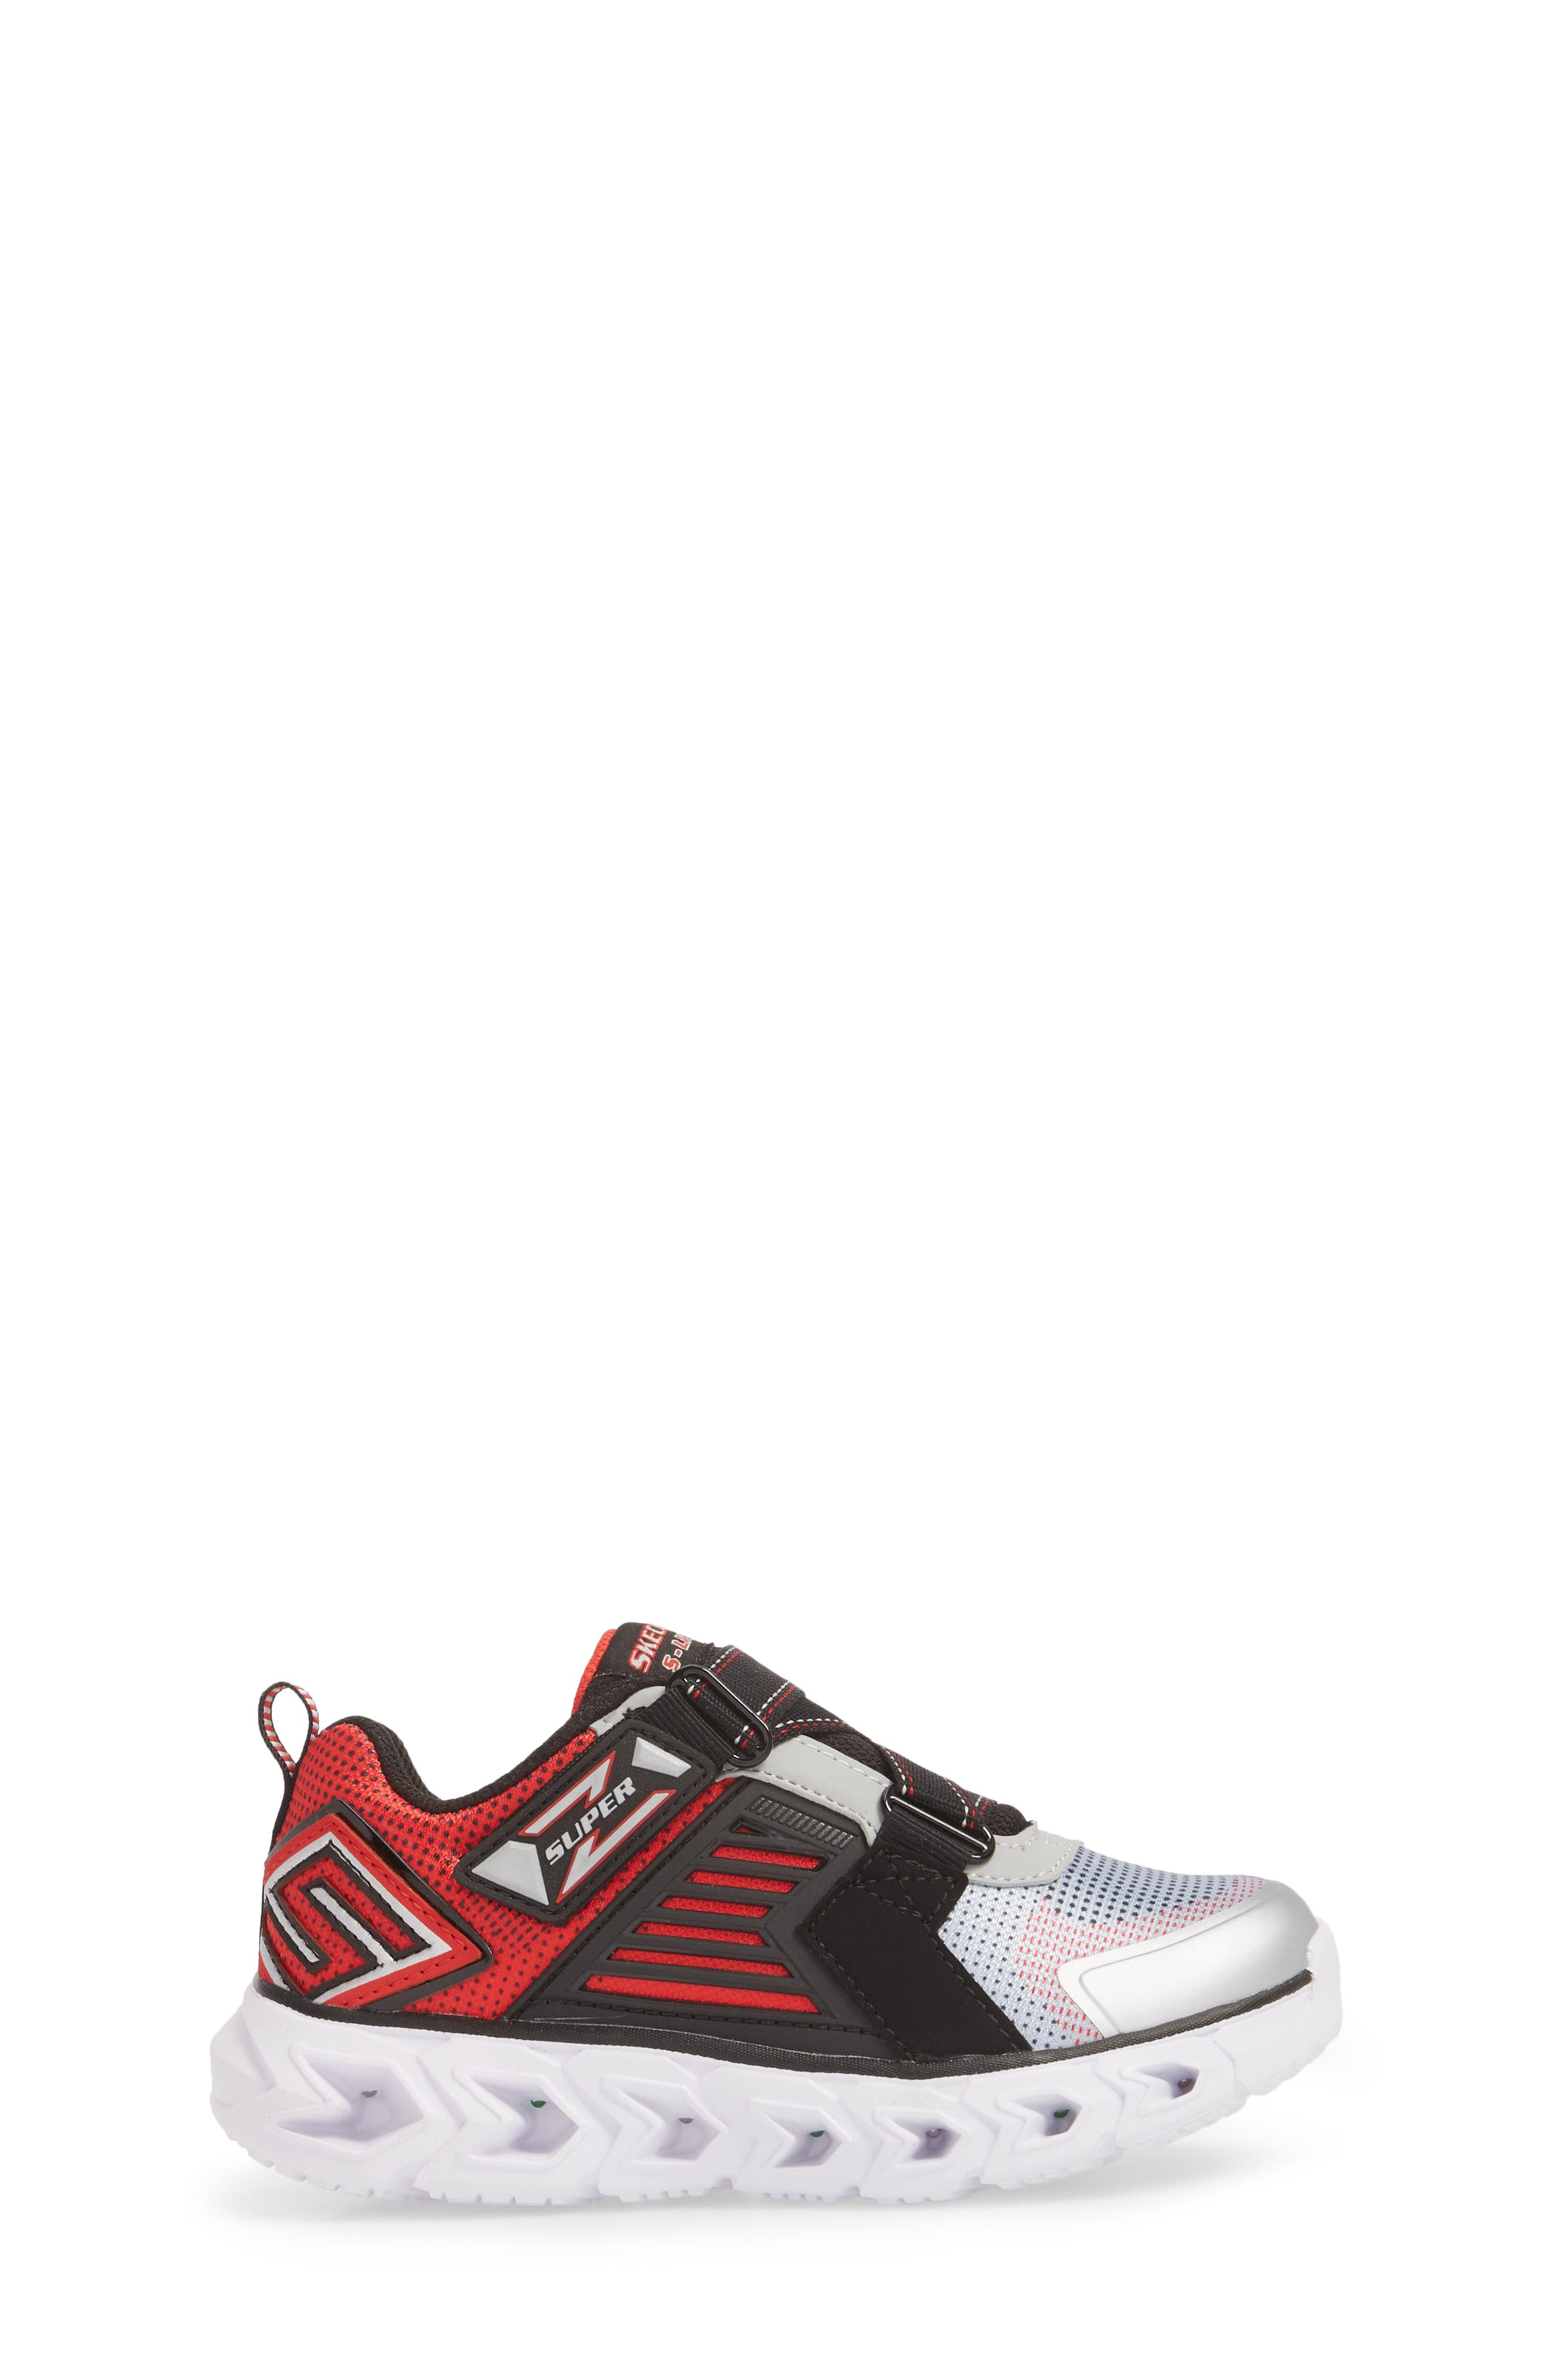 Hypno-Flash 2.0 Rapid Quake Sneakers,                             Alternate thumbnail 3, color,                             Silver/ Black